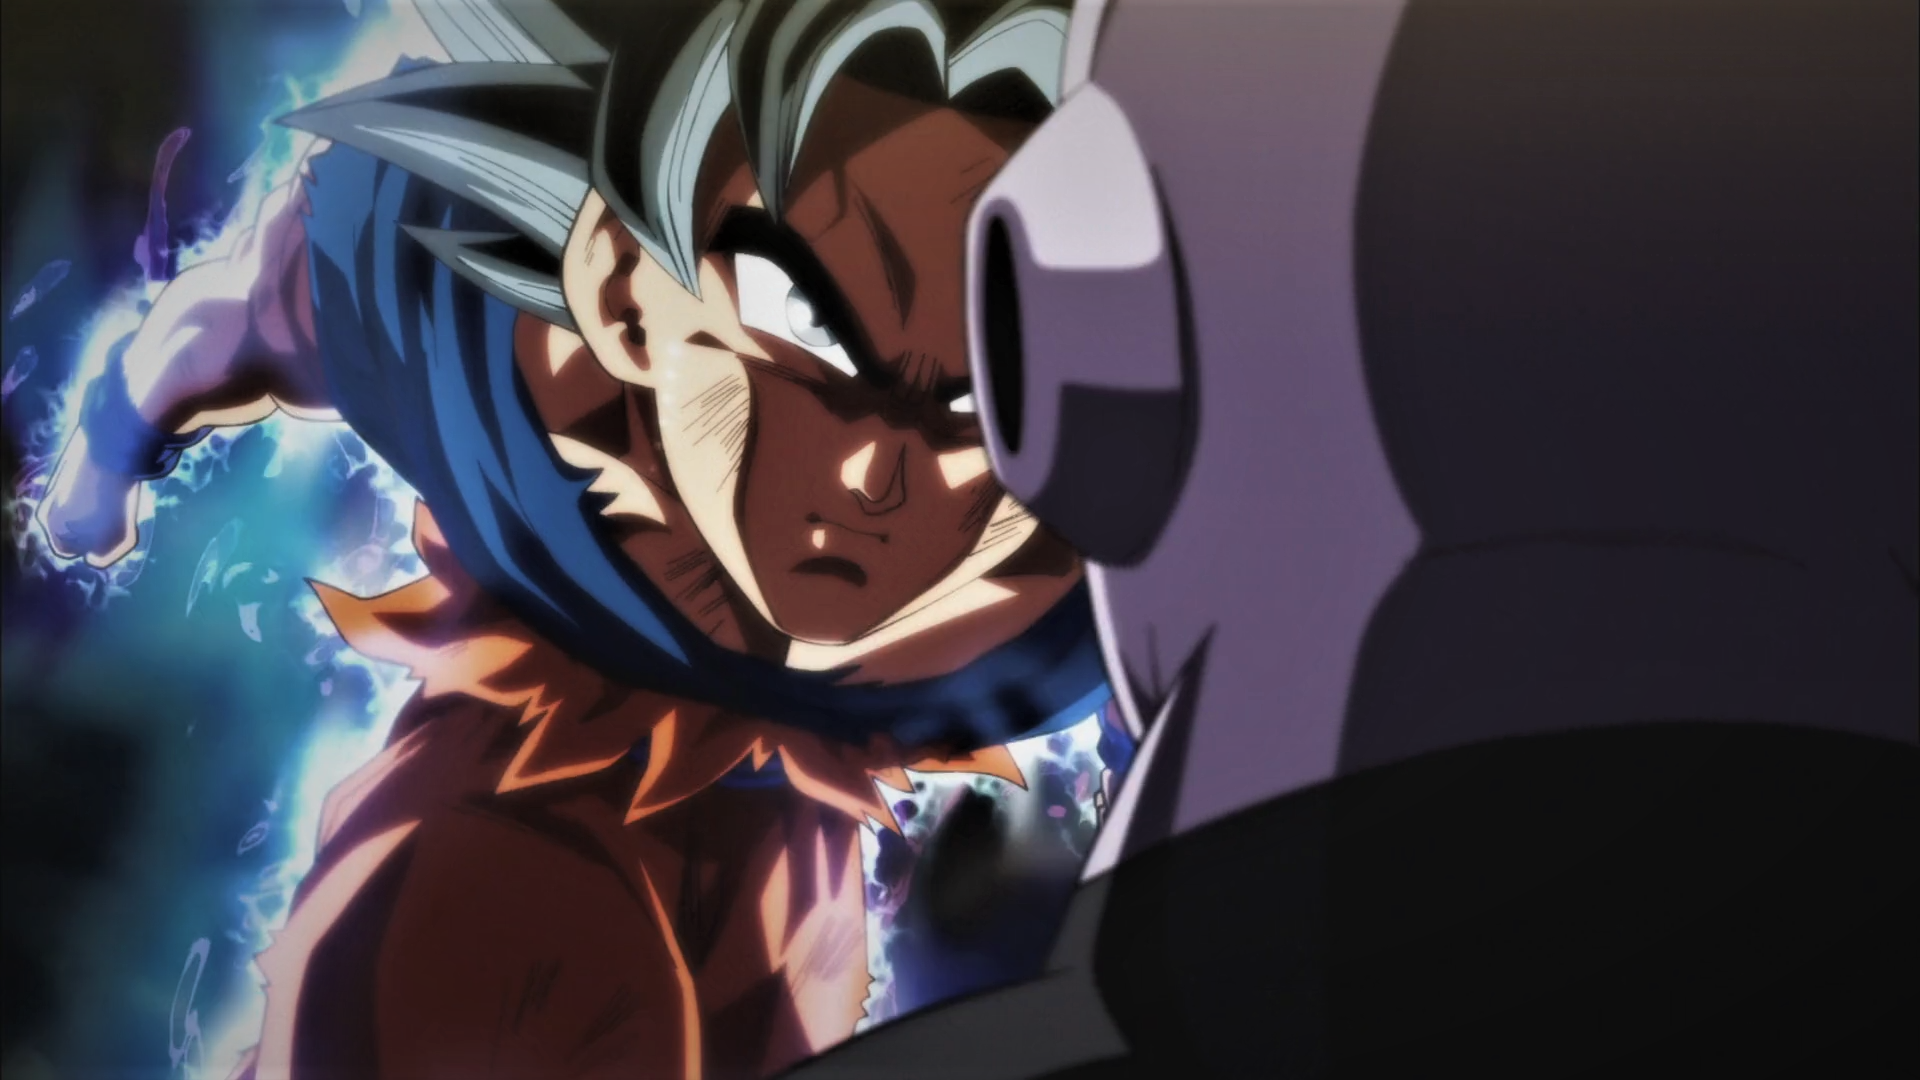 Anime 1920x1080 Super Saiyan Blue Dbs Son Goku Dragon Ball Super Jiren El Gris Dragon Ball Dragon Ball Super Anime Dragon Ball Dragon Ball Super Goku